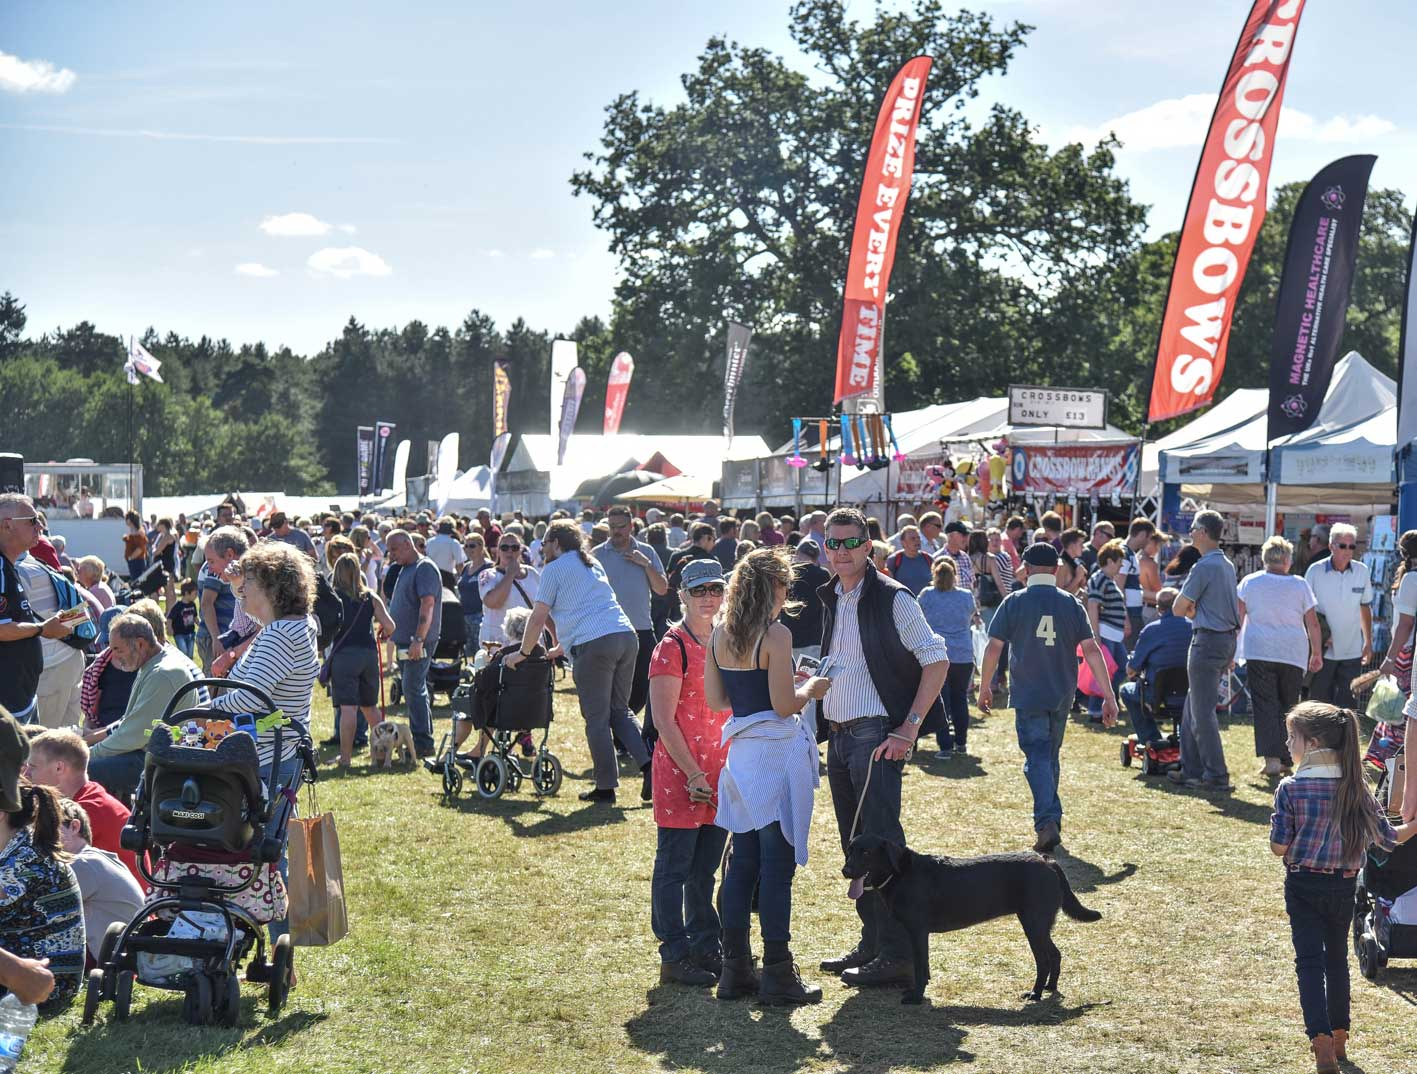 The Thame Country Fair